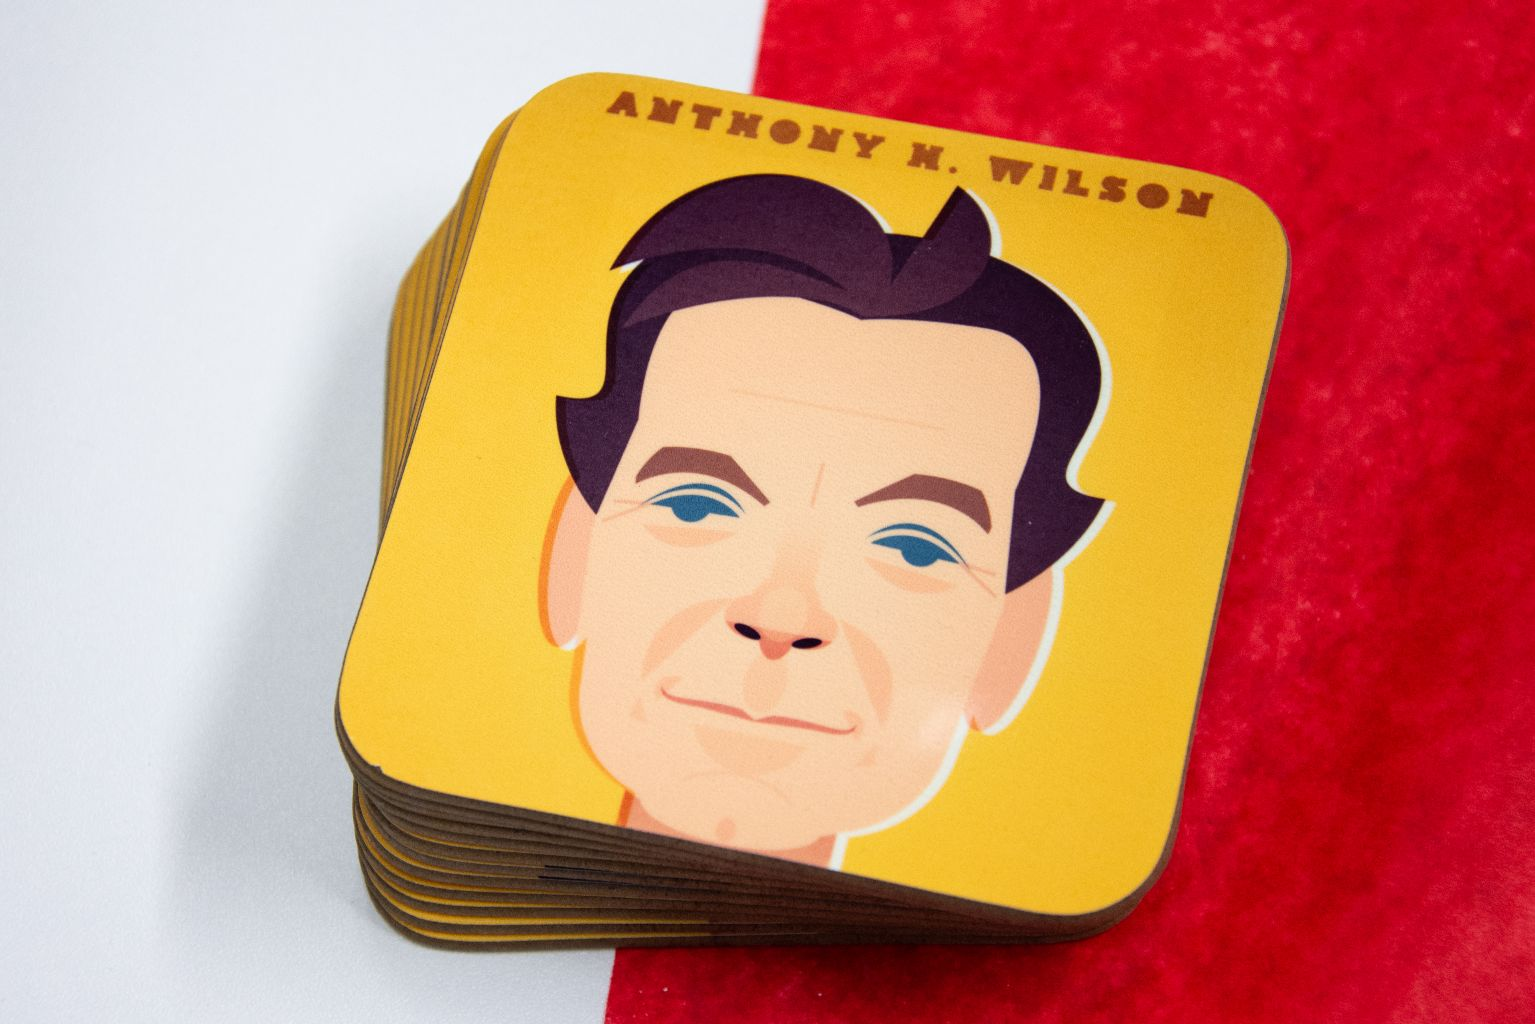 Anthony H Wilson Coaster Designed by Stanley Chow